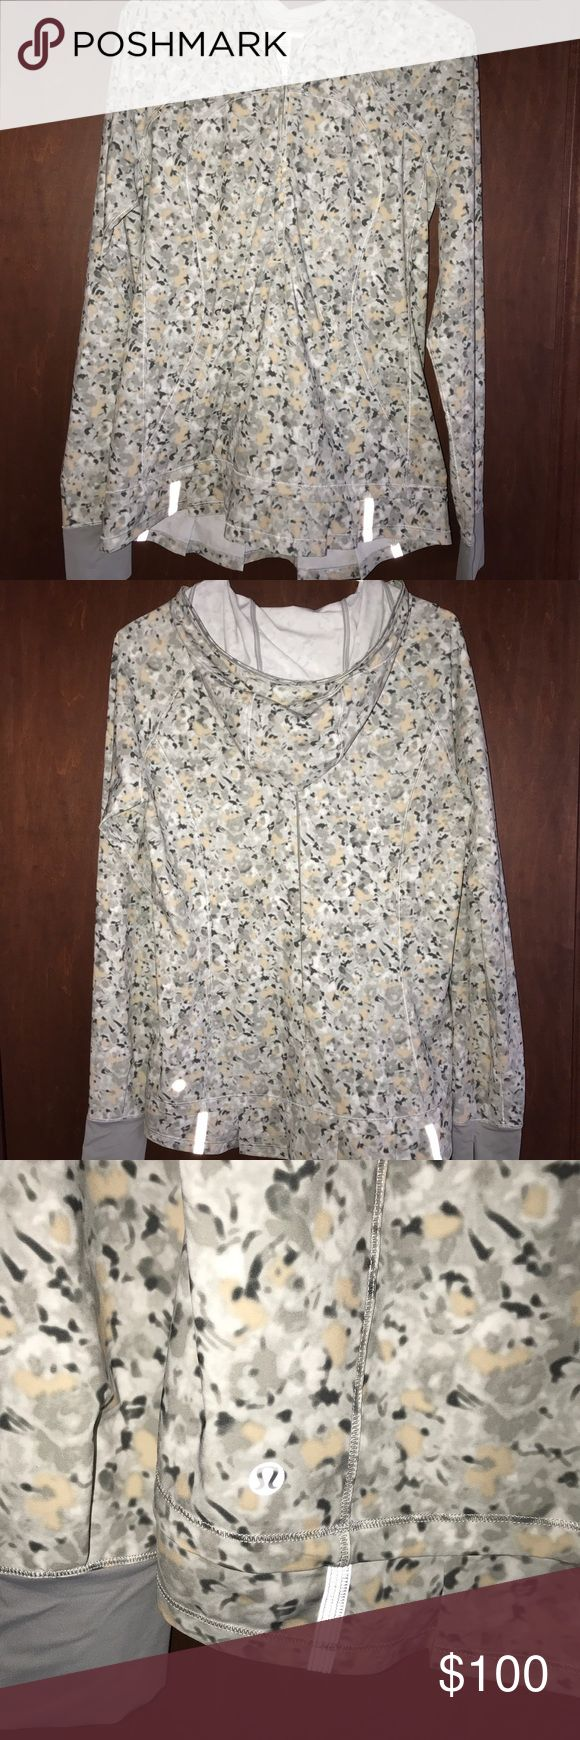 PRICE REDUCTION Lululemon Rain Resistant Pullover Beautiful and Rare pattern! Rain resistant Pullover with ruffle hem on bottom.  Flattering and perfect to layer underneath.  The hood does have a slot for your pony tail. Zero flaws! lululemon athletica Jackets & Coats